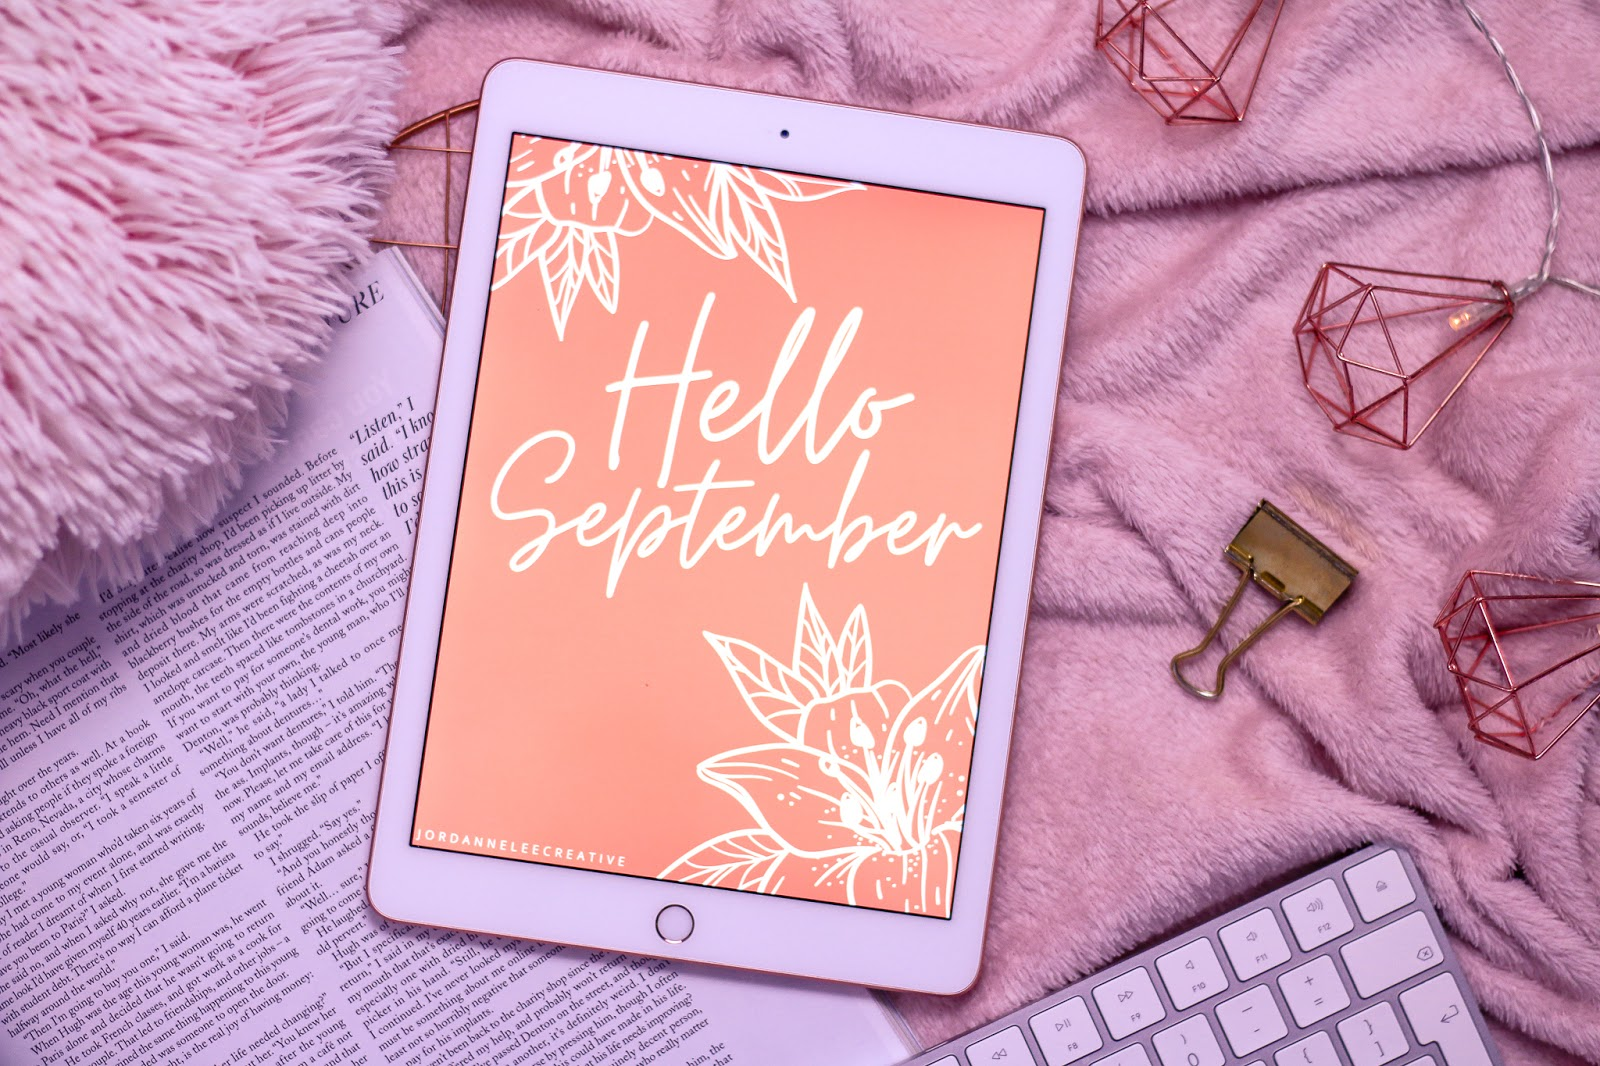 Birds eye view of an iPad with a Hello September graphic made by Jordanneleecreative on the screen